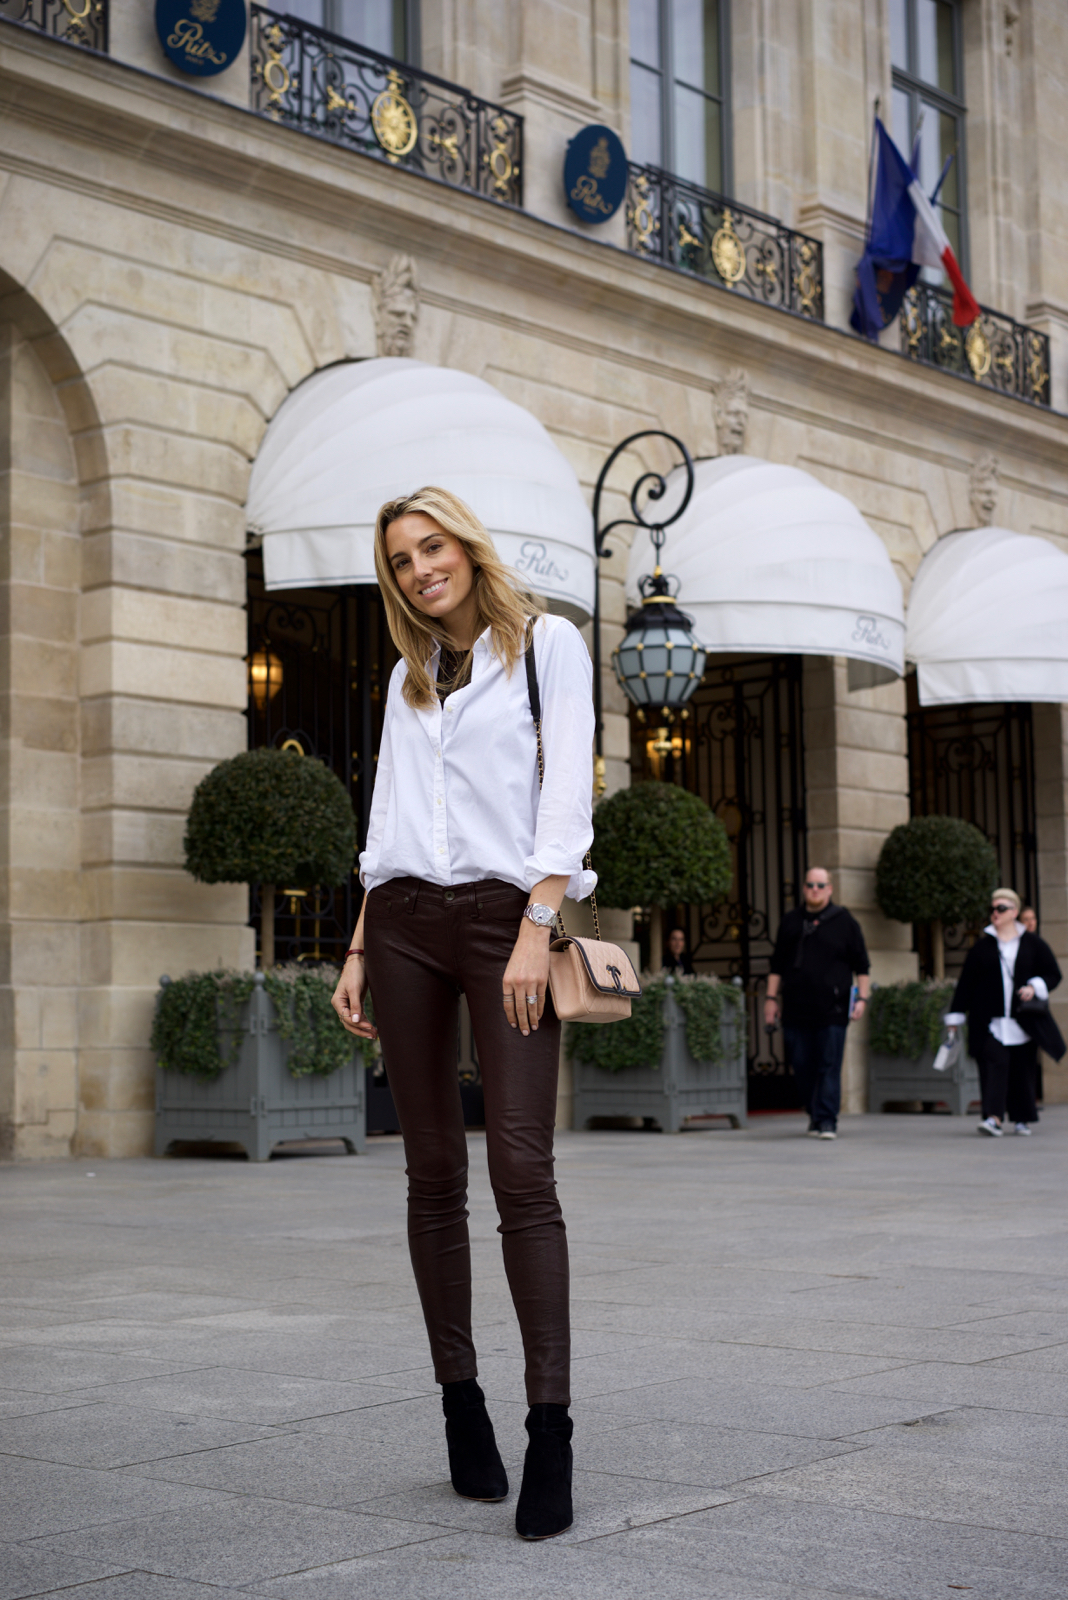 Paris fashion week, Street Style Paris, Ritz Paris, Travel, Travel guide, Leather Pants